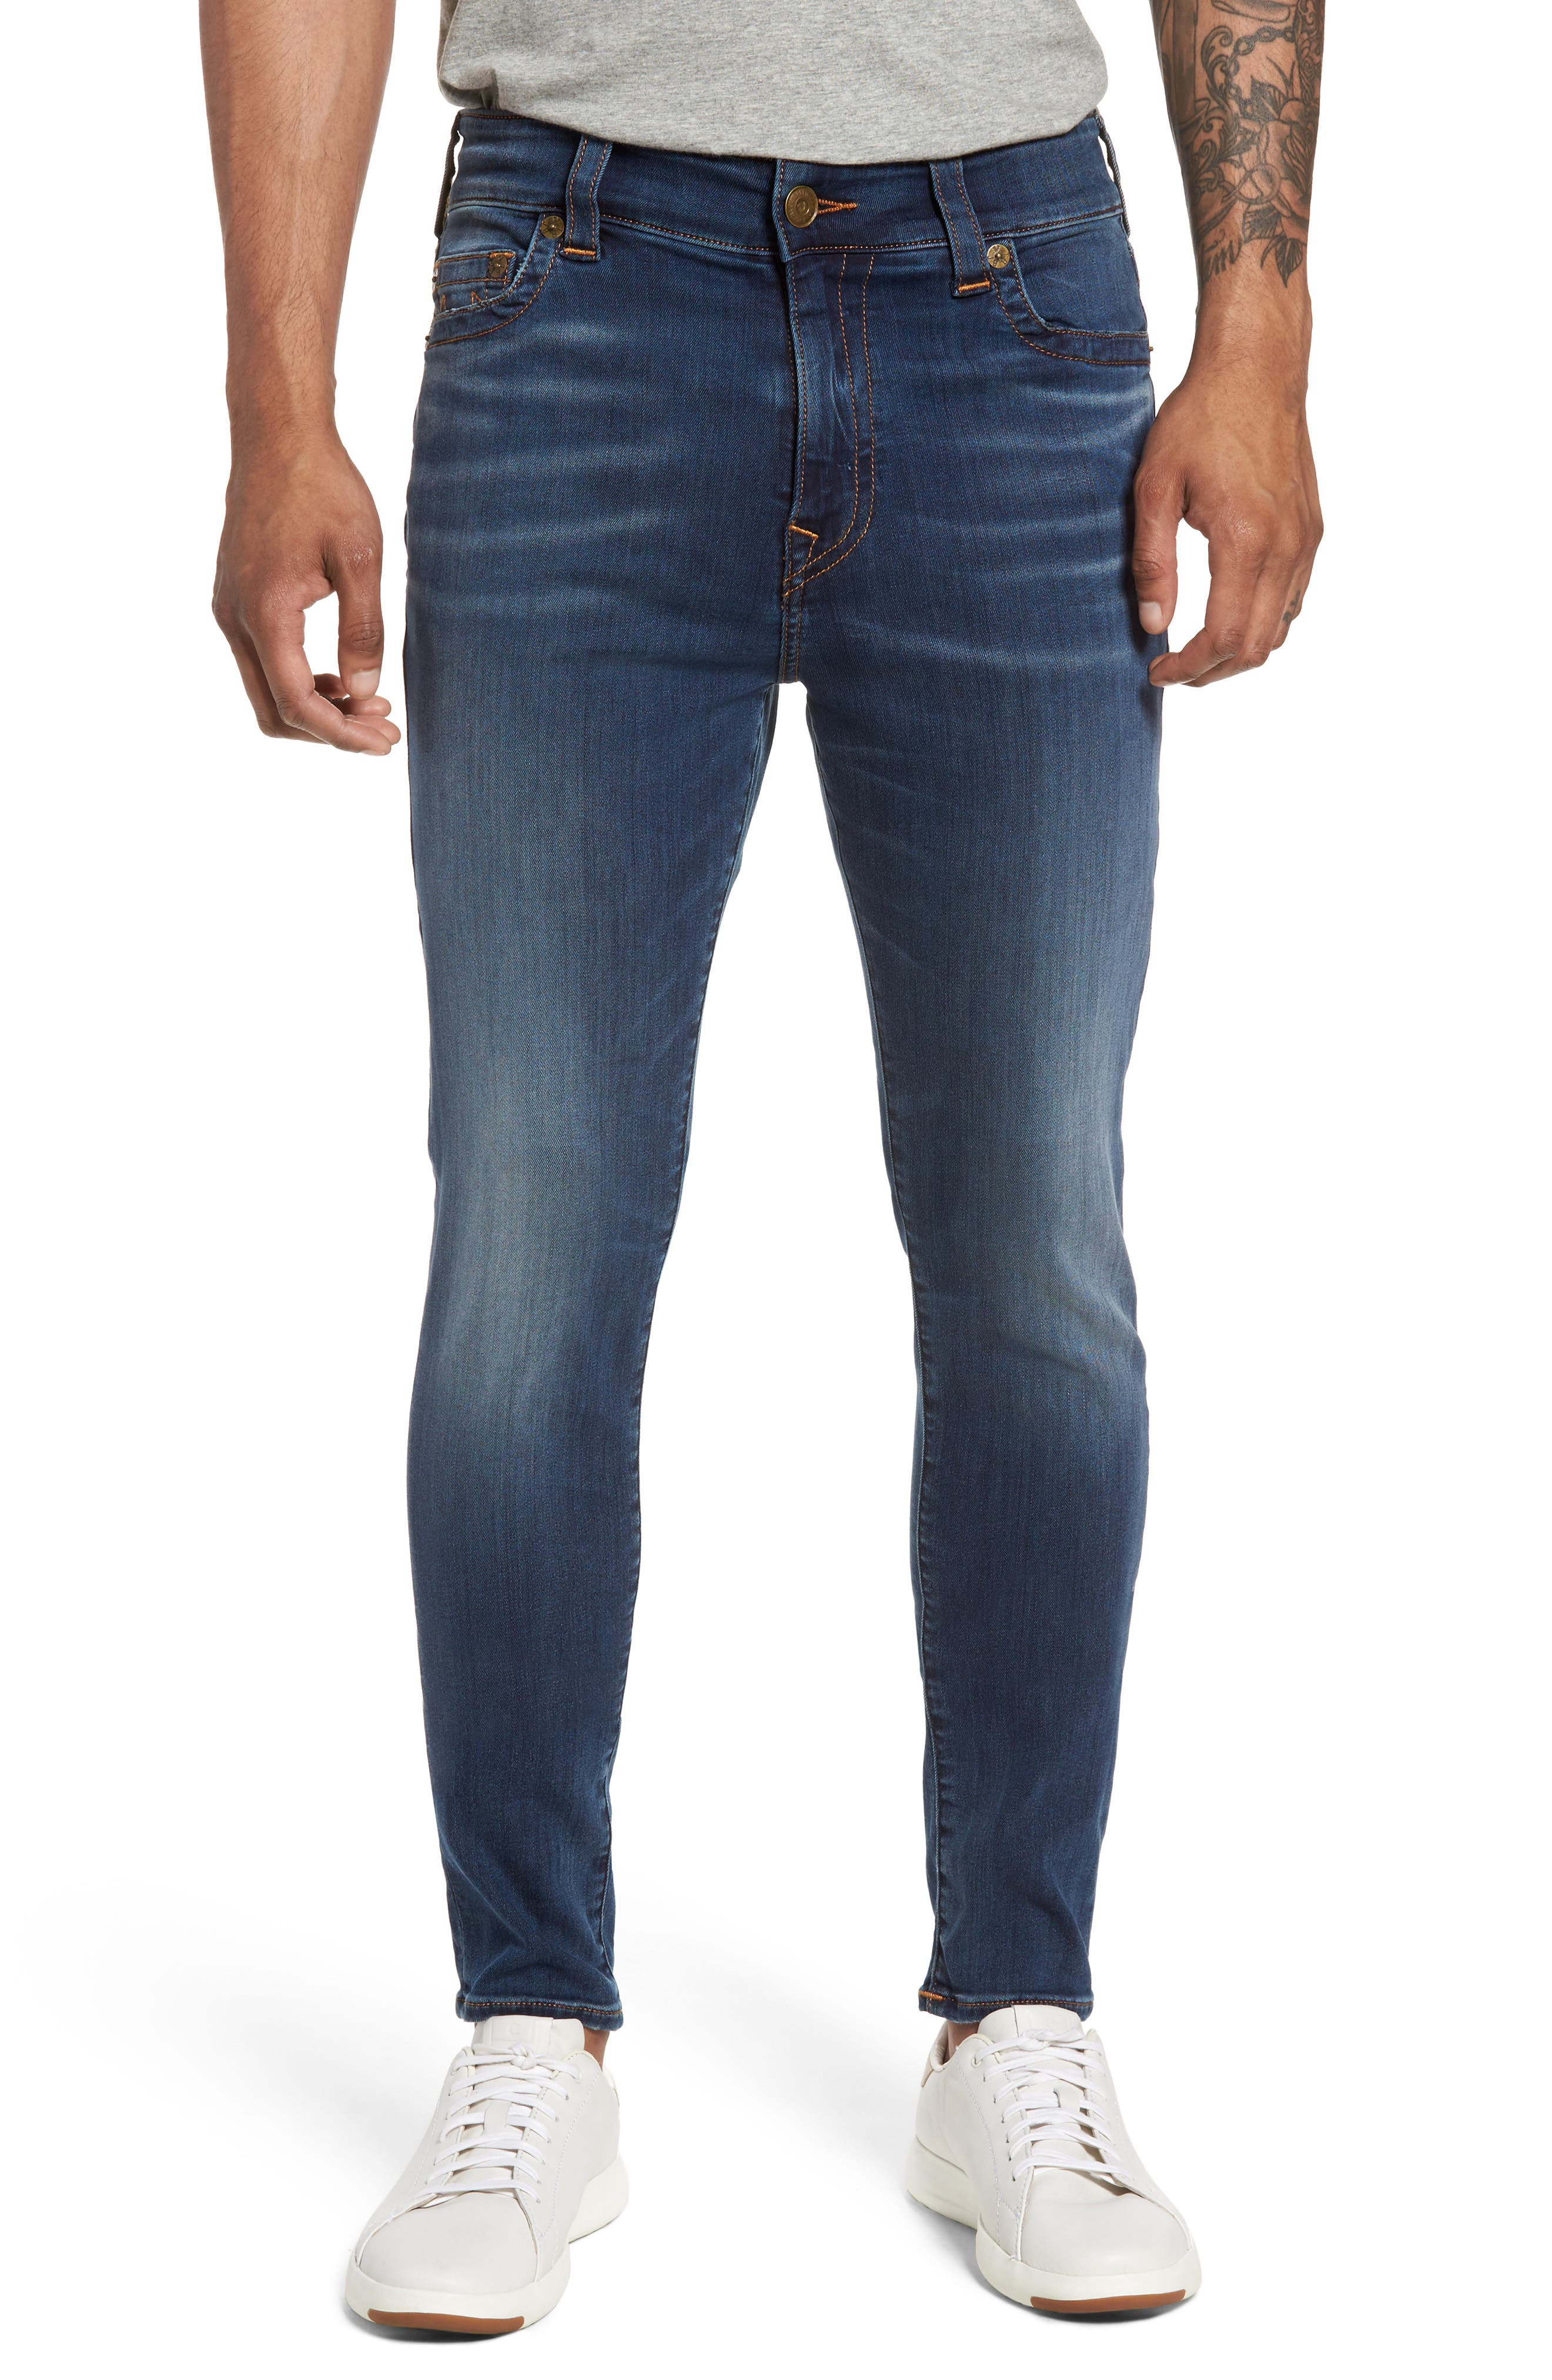 Jack Skinny Fit Jeans,                         Main,                         color, 402